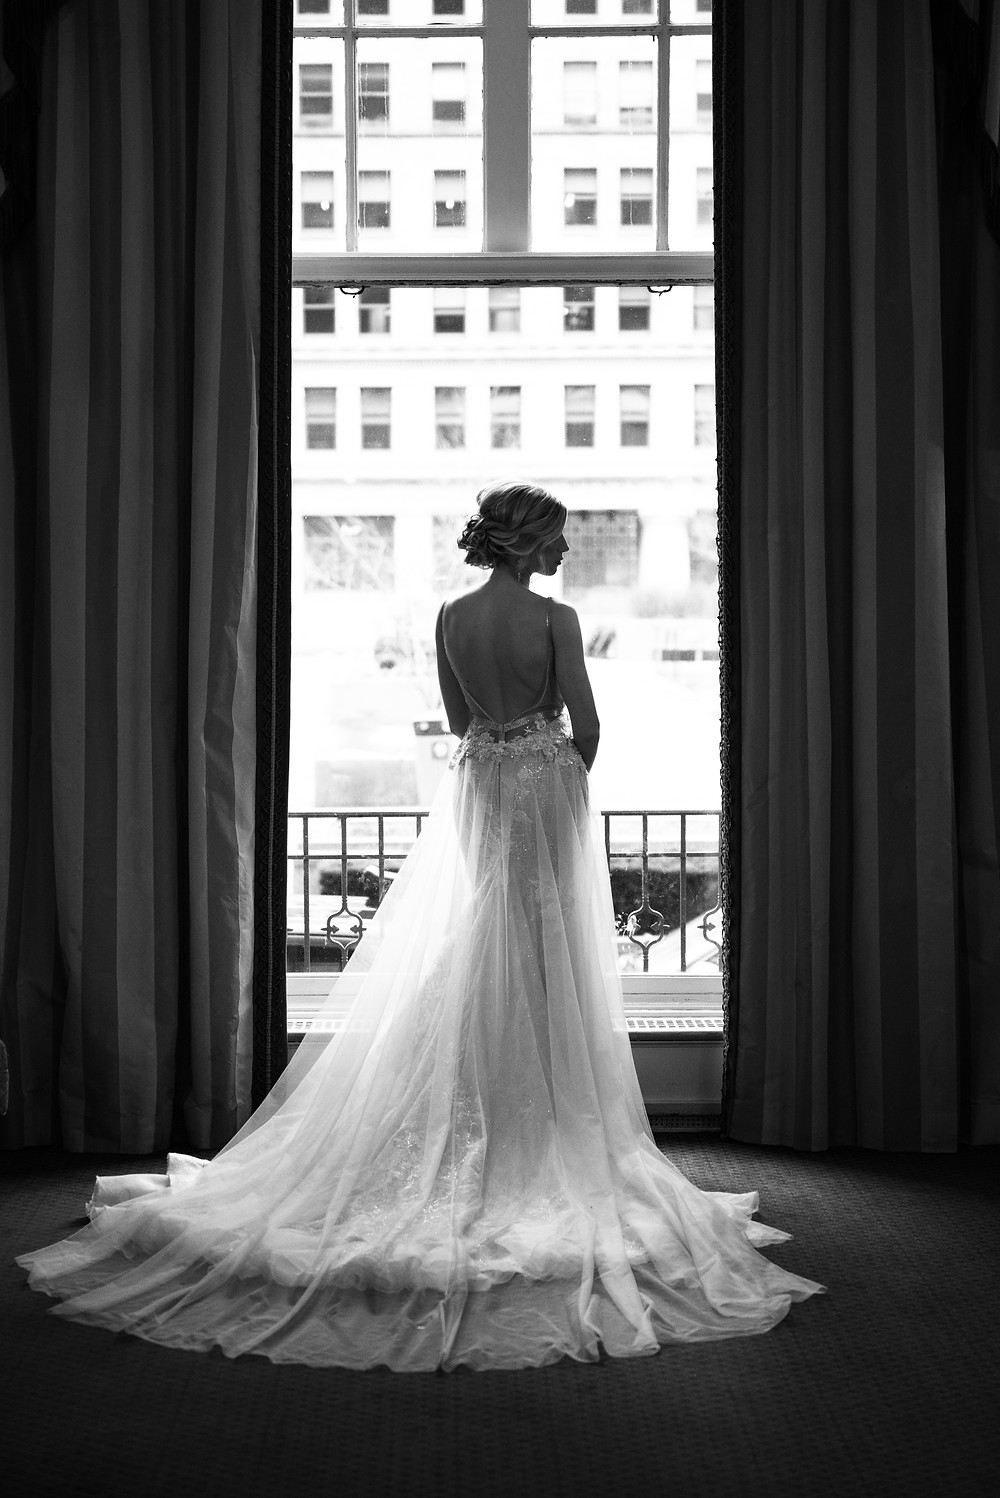 Bridal portrait in the window at the Omni William Penn Hotel in Pittsburgh